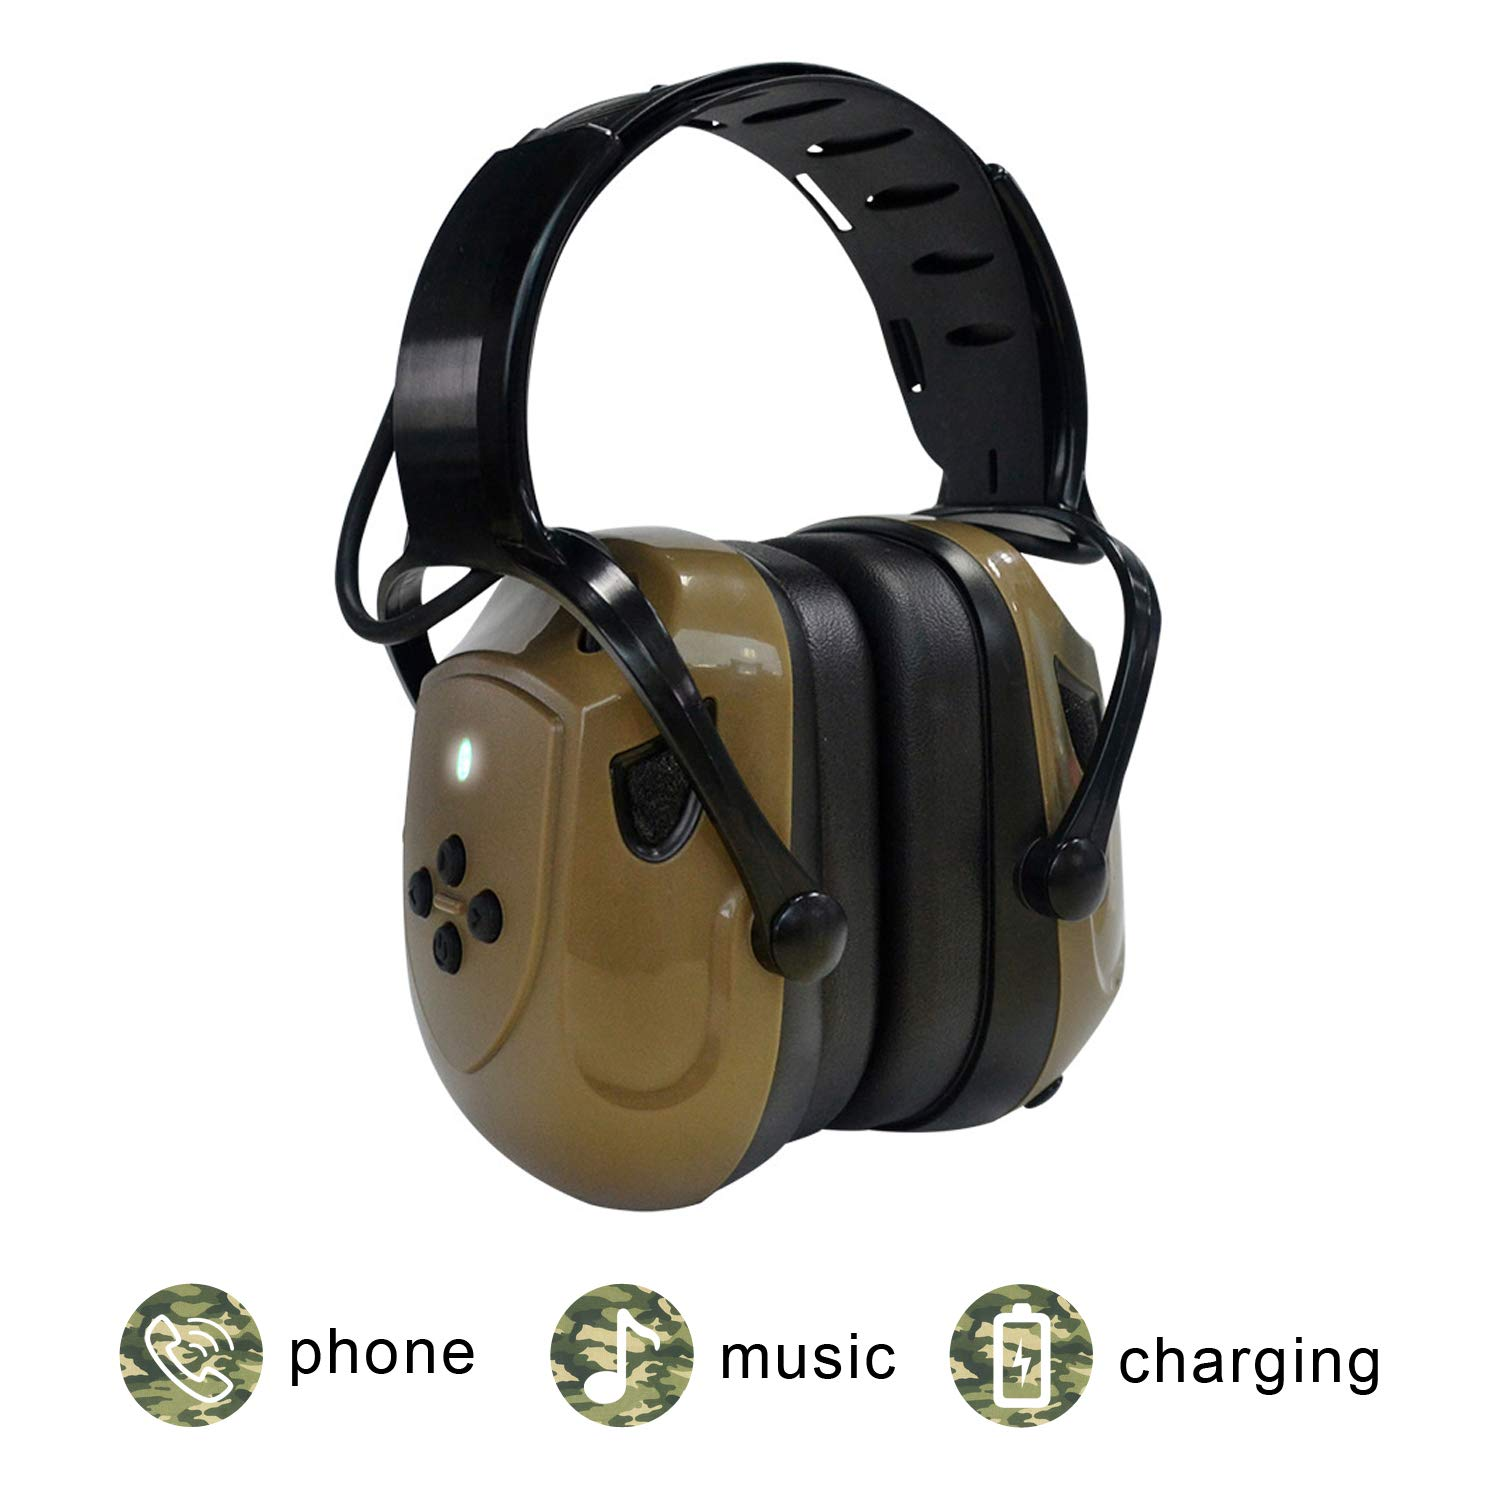 Electronic Shooting Earmuffs, EAREST Rechargeable Bluetooth Ear Muffs Headphone/Sound Amplification Noise Reduction Ear Protection, Ideal for Shooting and Hunting,ArmyGreen by EAREST